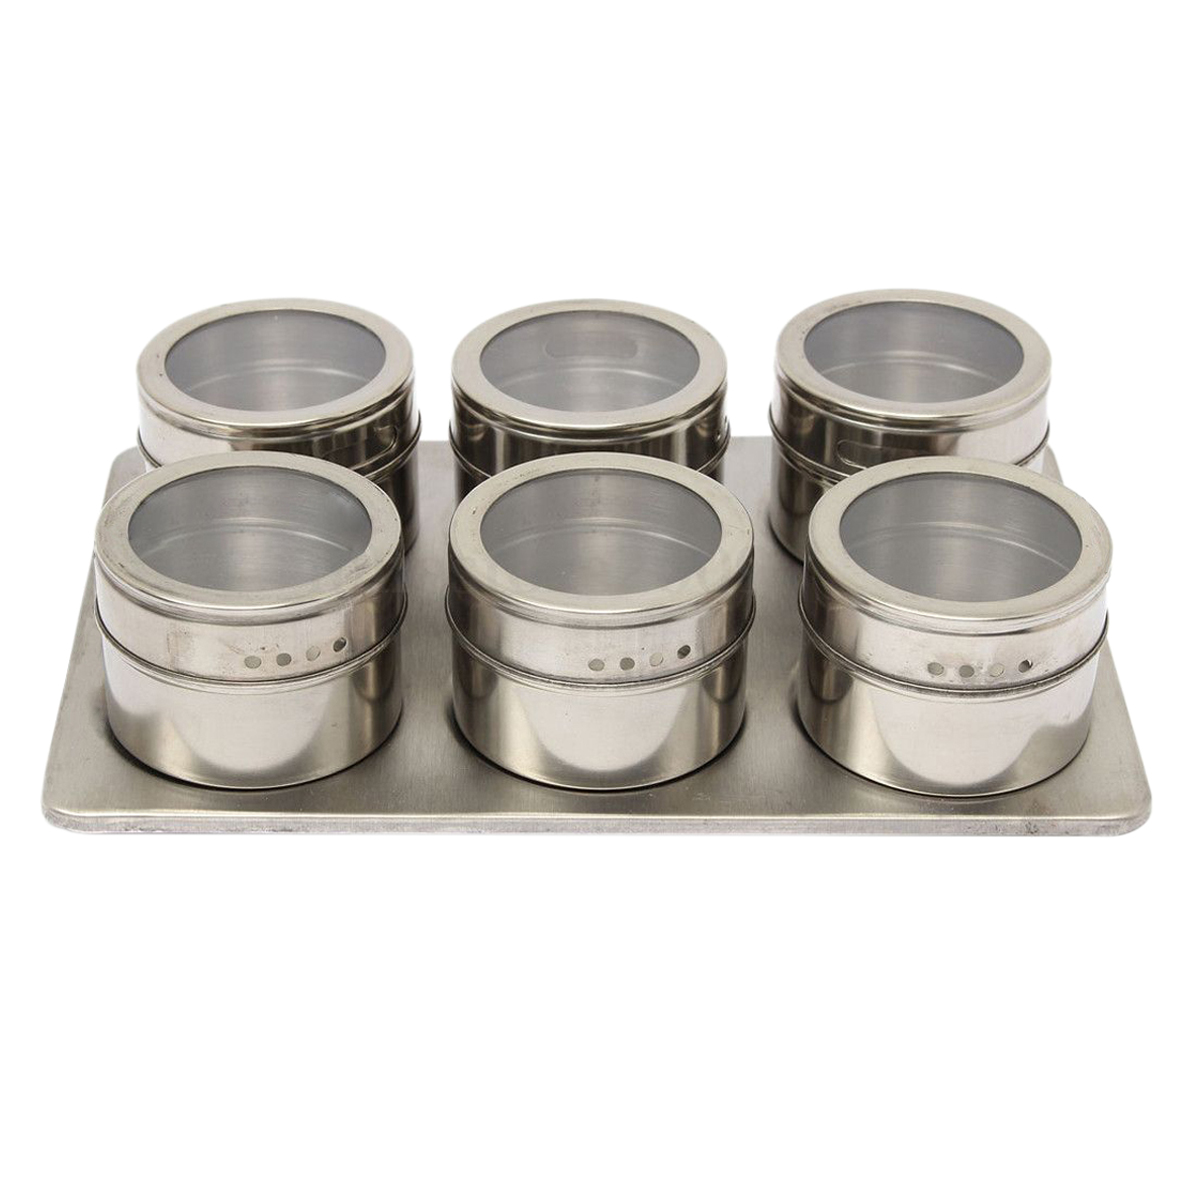 New 7in1 Magnetic Spice Jar Set Rack Holder Seasonings Containers  Condiments Storage Silver In Spice U0026 Pepper Shakers From Home U0026 Garden On  Aliexpress.com ...